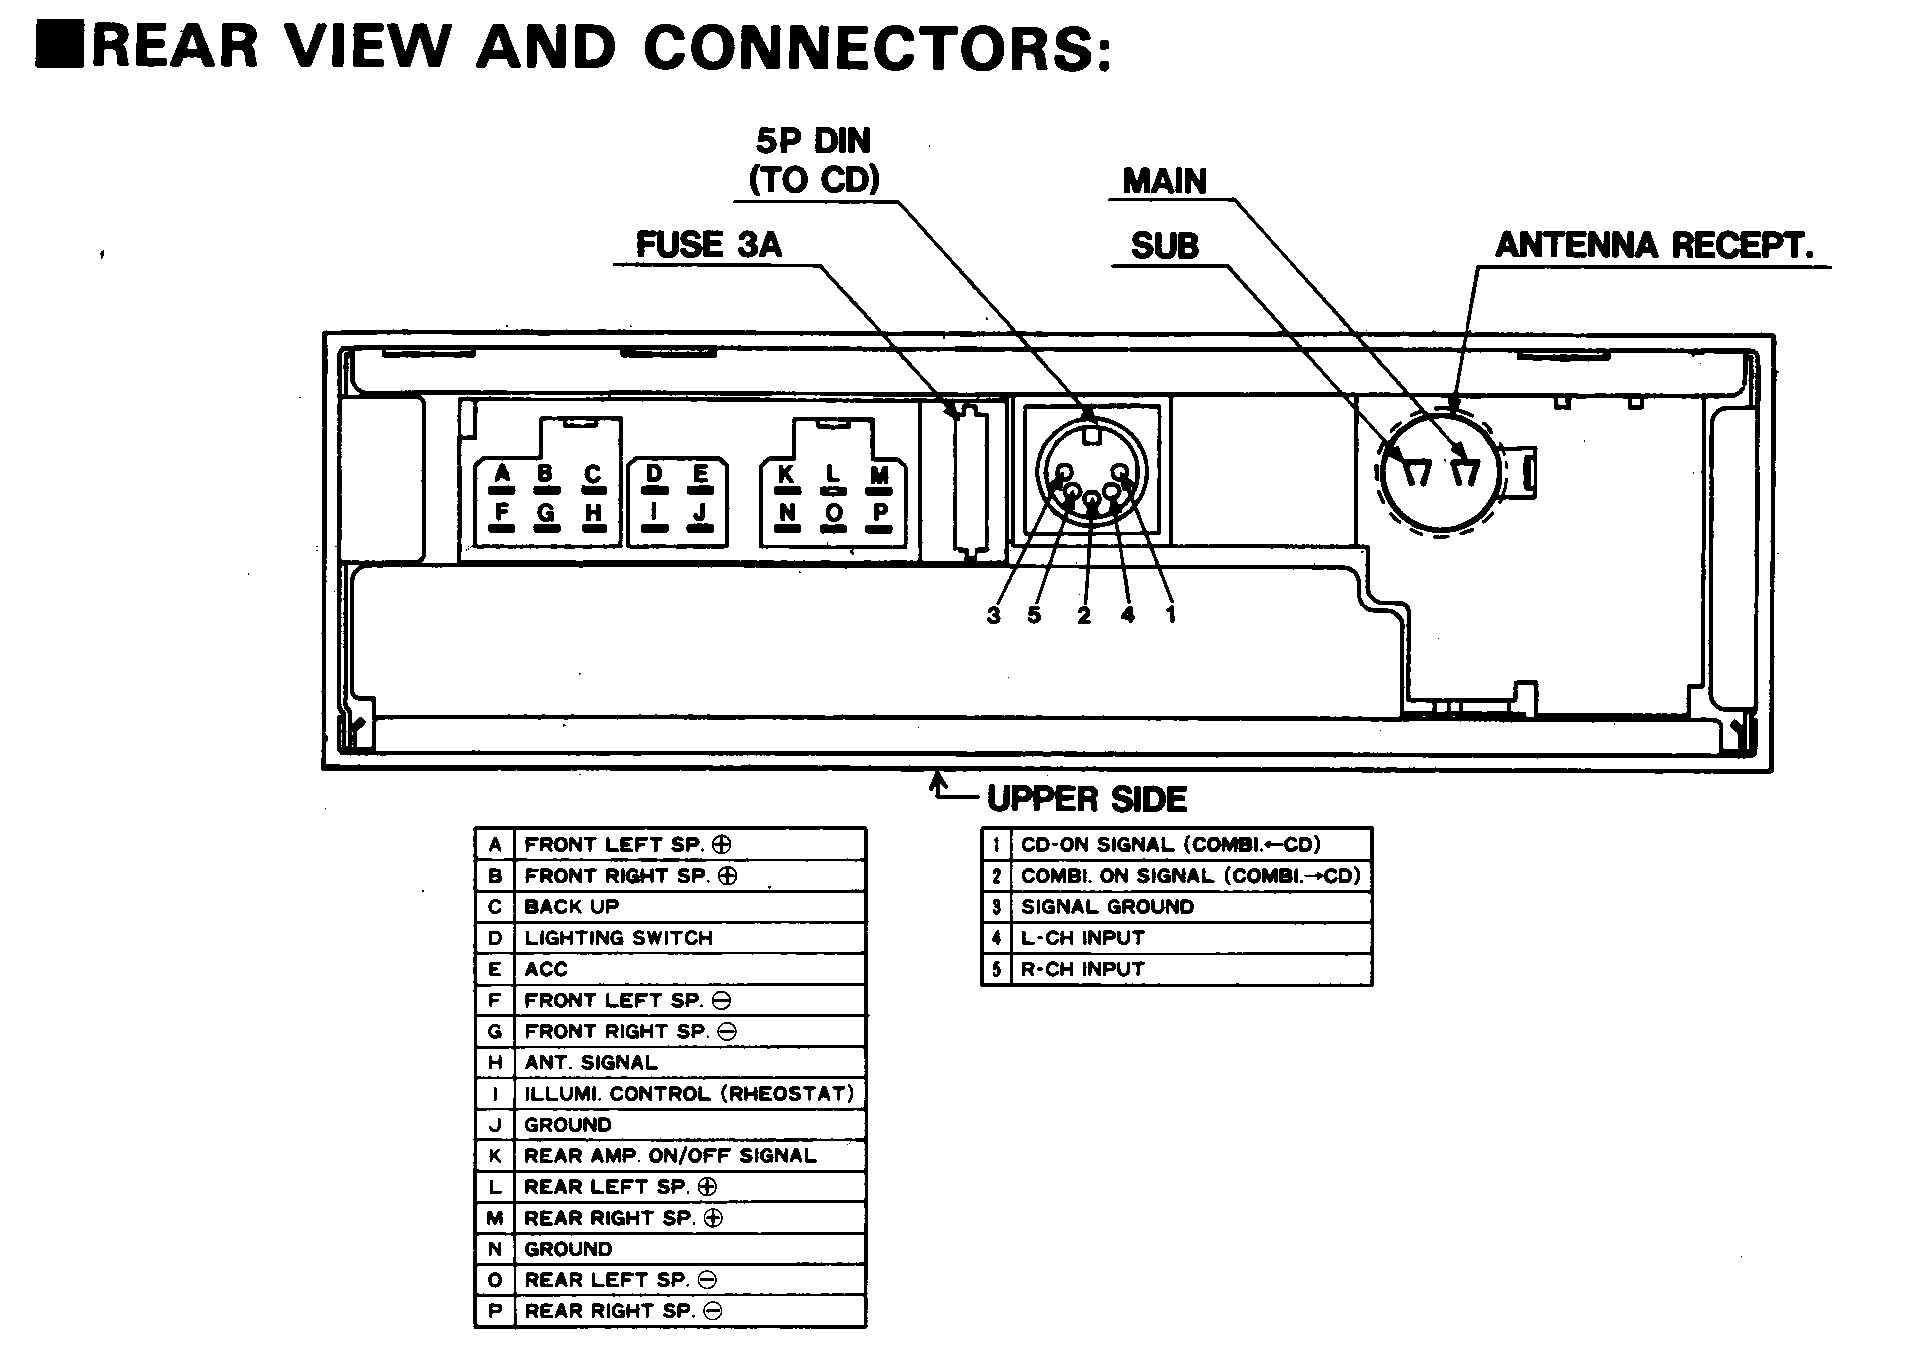 hight resolution of pioneer car stereo wiring diagram free collection pioneer car stereo wiring diagram best car sound download